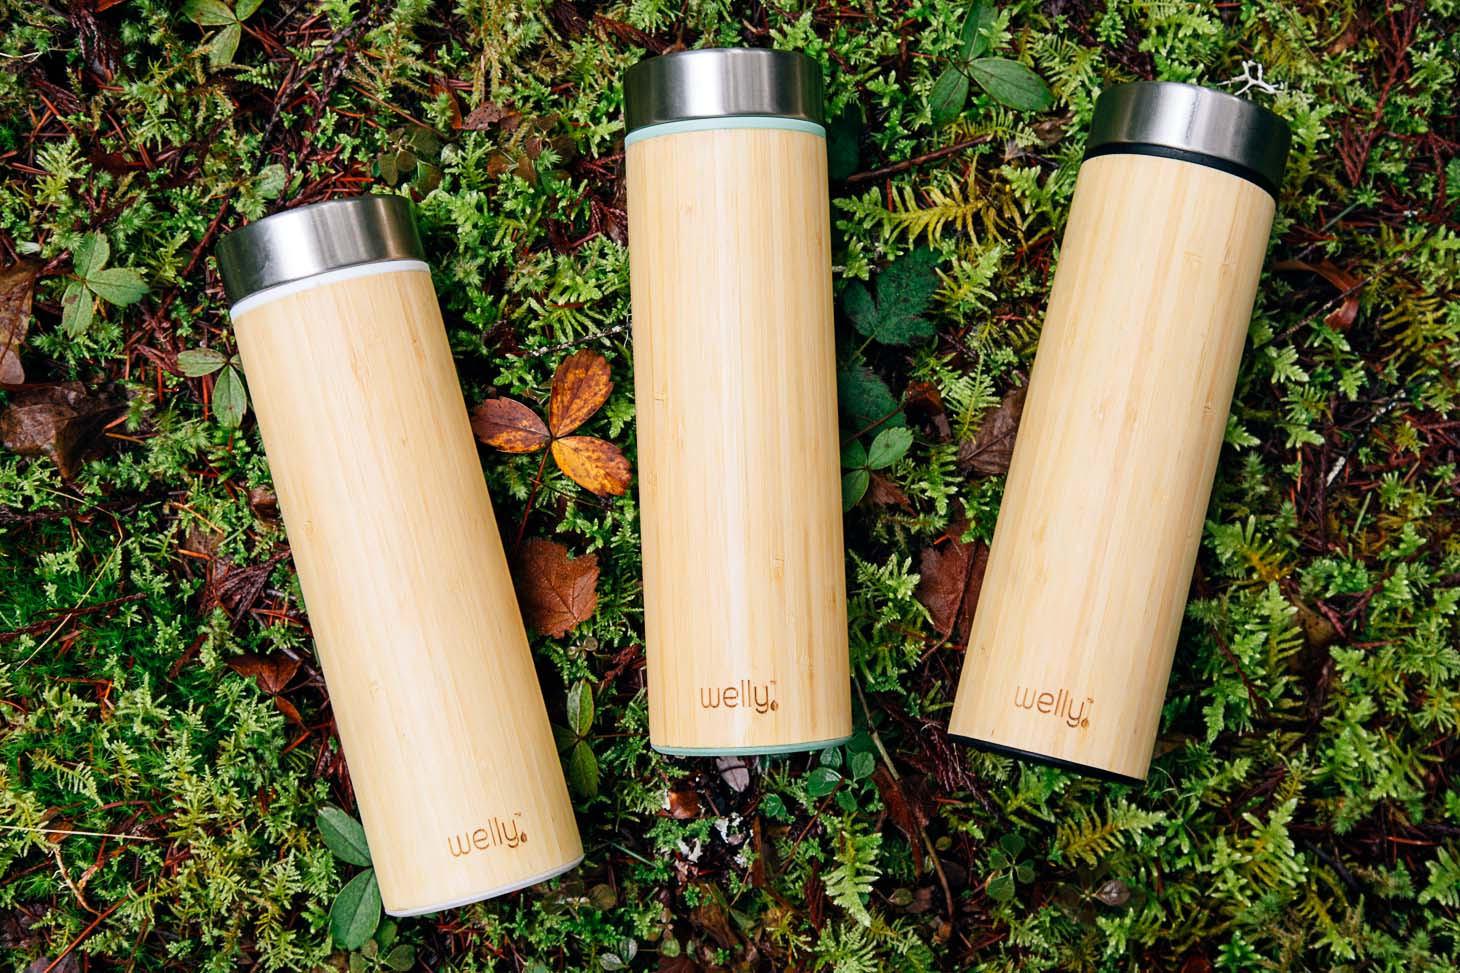 Three bamboo water bottles on a mossy surface.